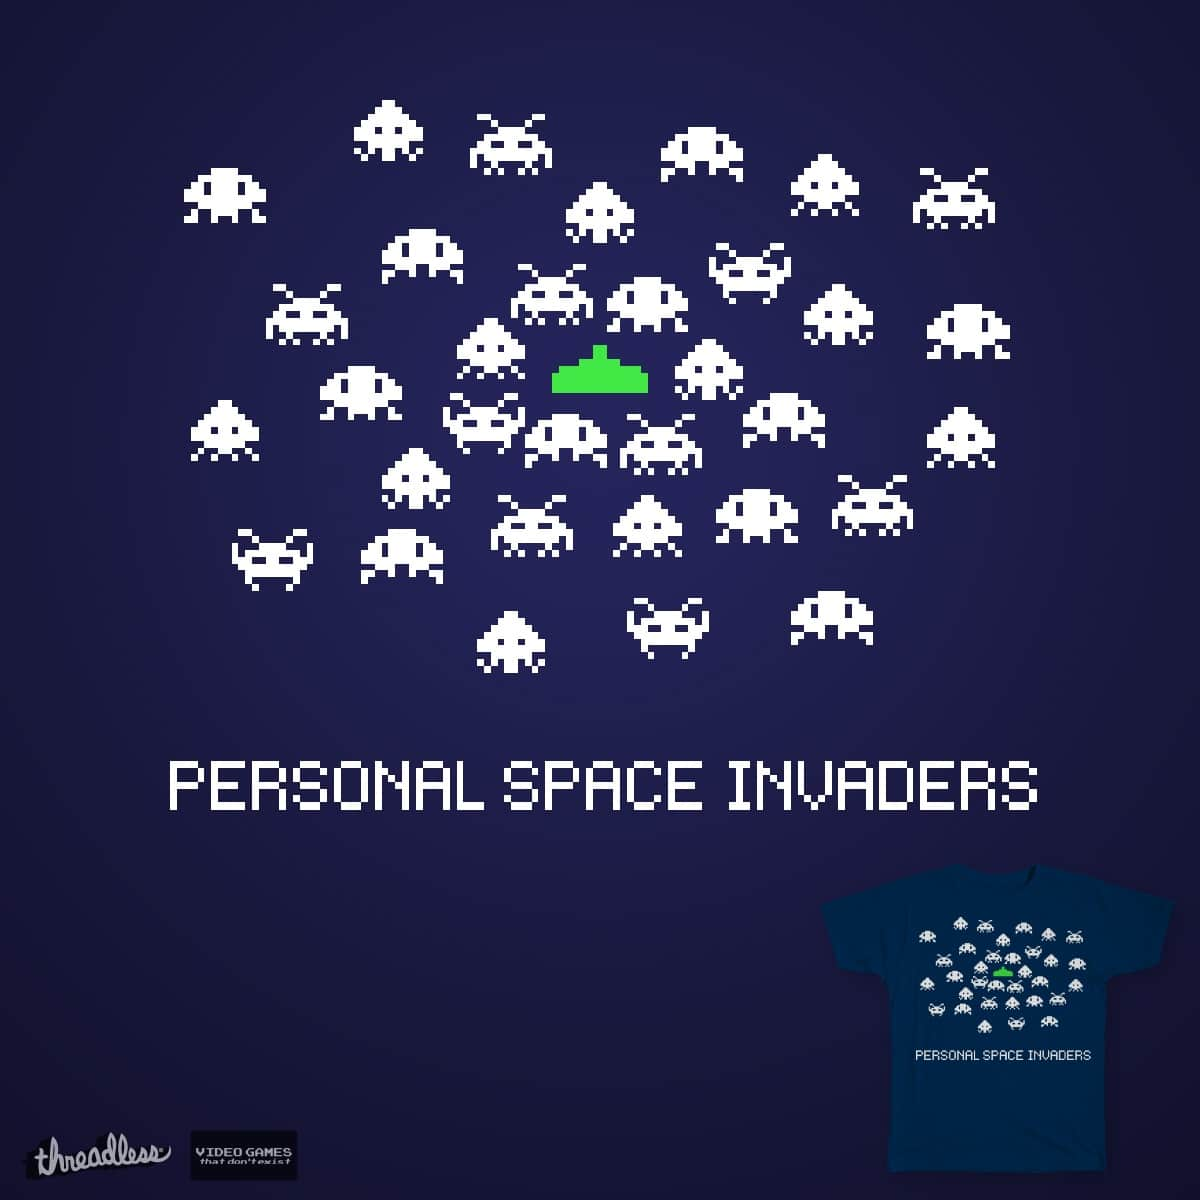 Personal Space Invaders by SafetyPenguin on Threadless